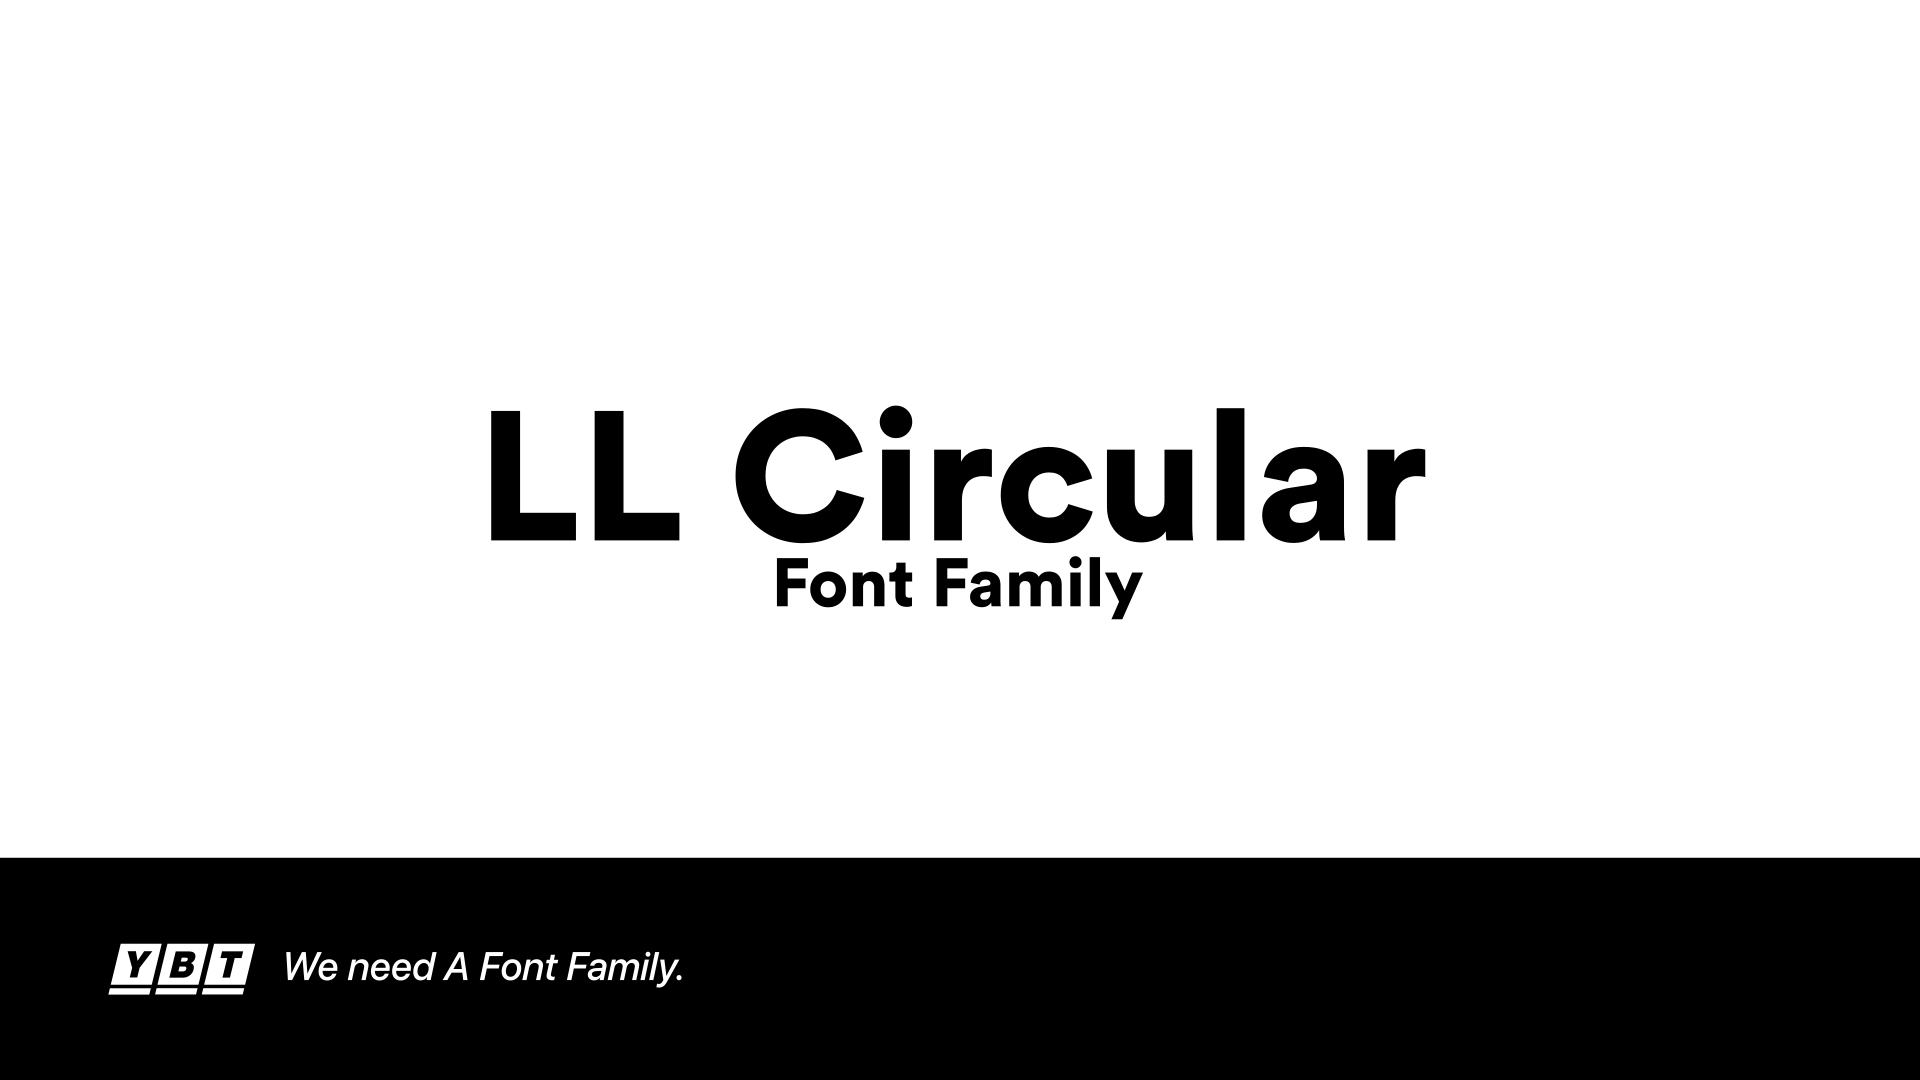 Circular-Std Font Family by YbtOffical on DeviantArt